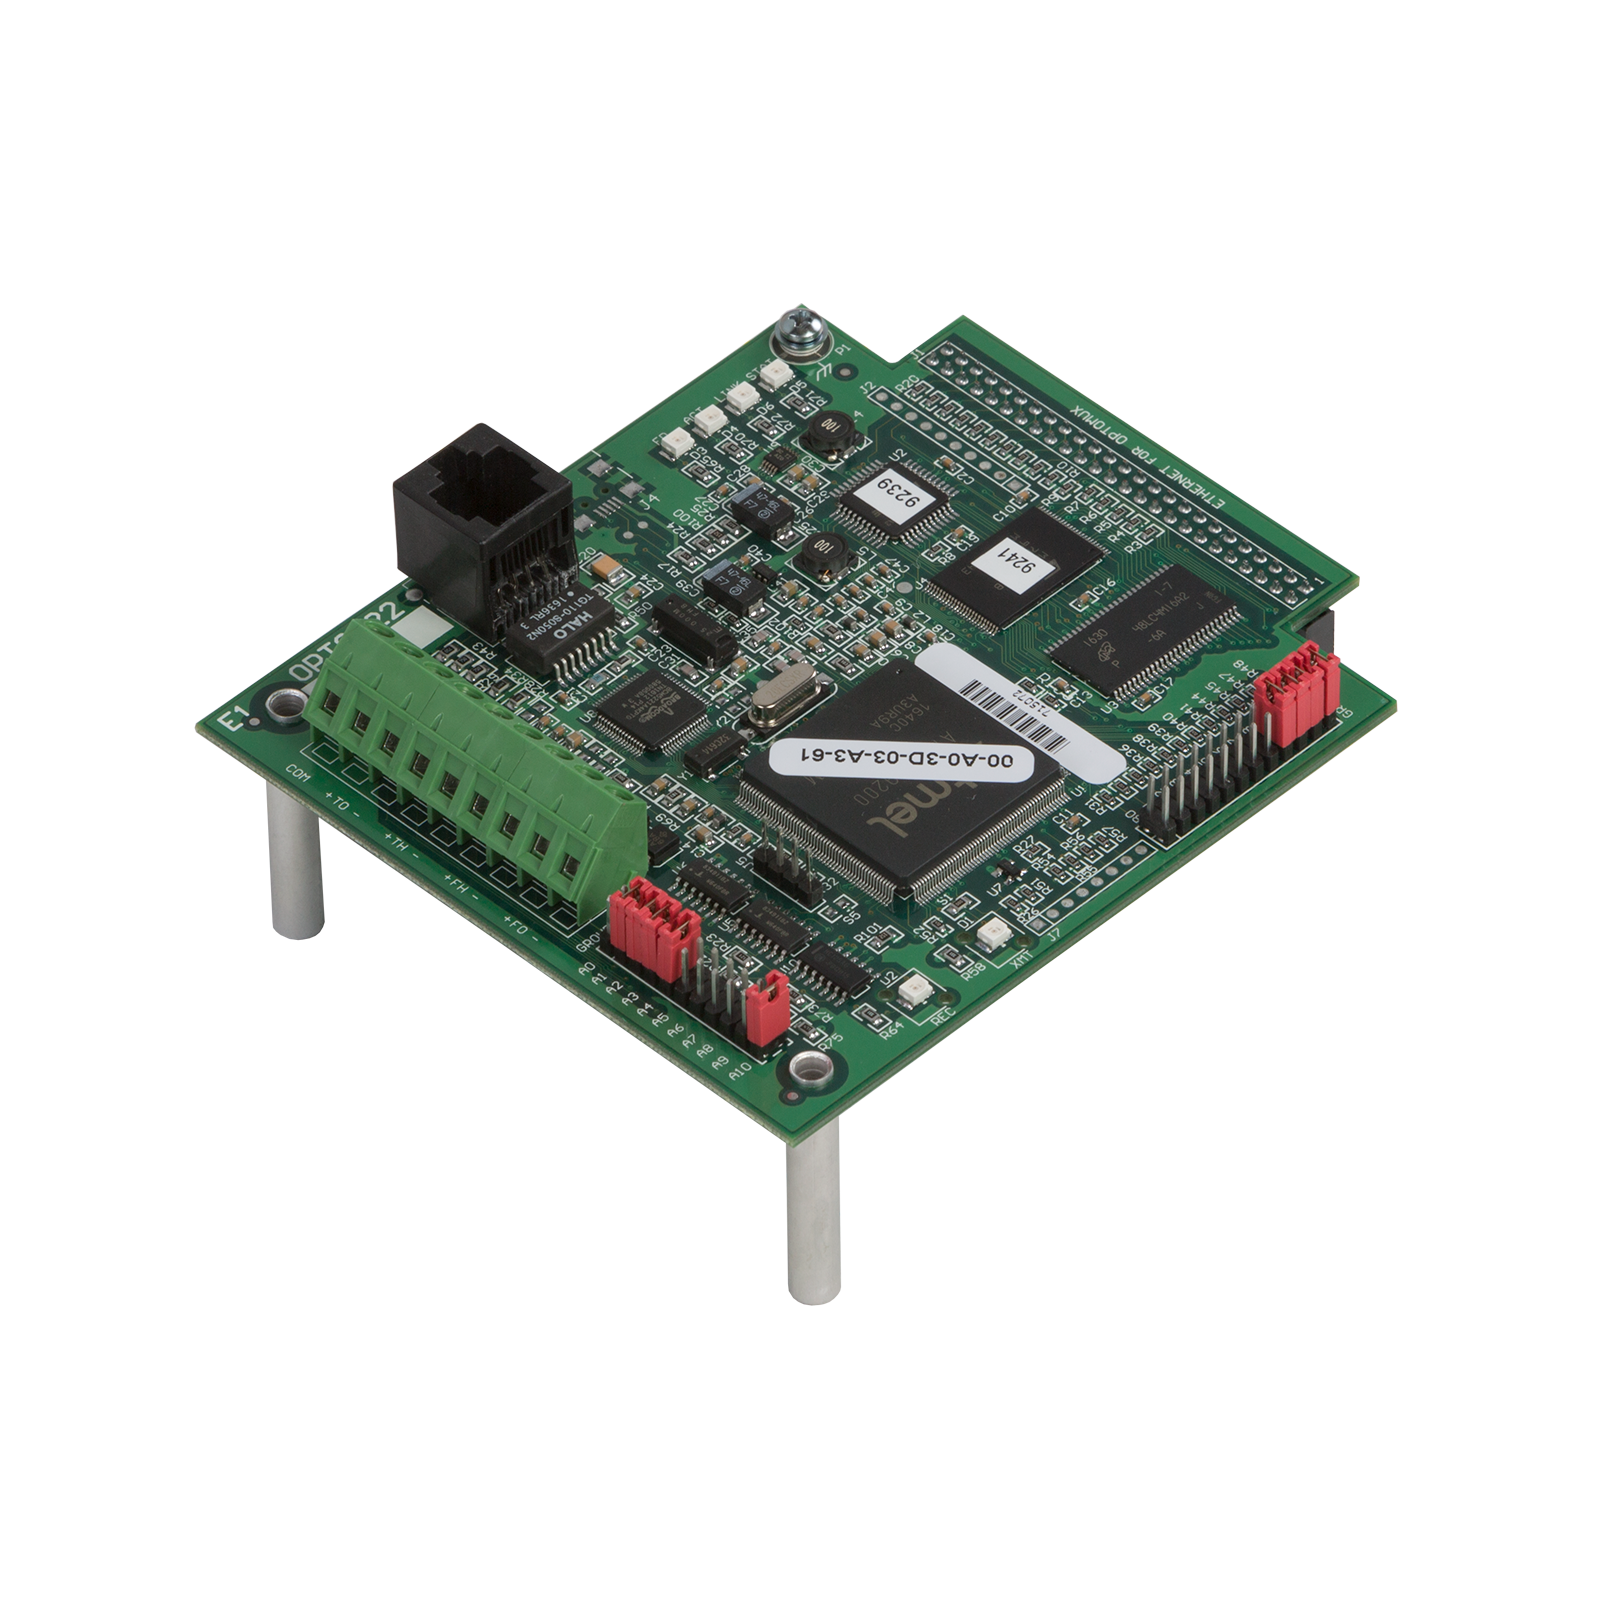 Opto22 E1 16 Channel Digital Optomux Brain Board For Serial And Hardware Circuit Of Pcbased Data Logger Is Designed Around Analog Previous